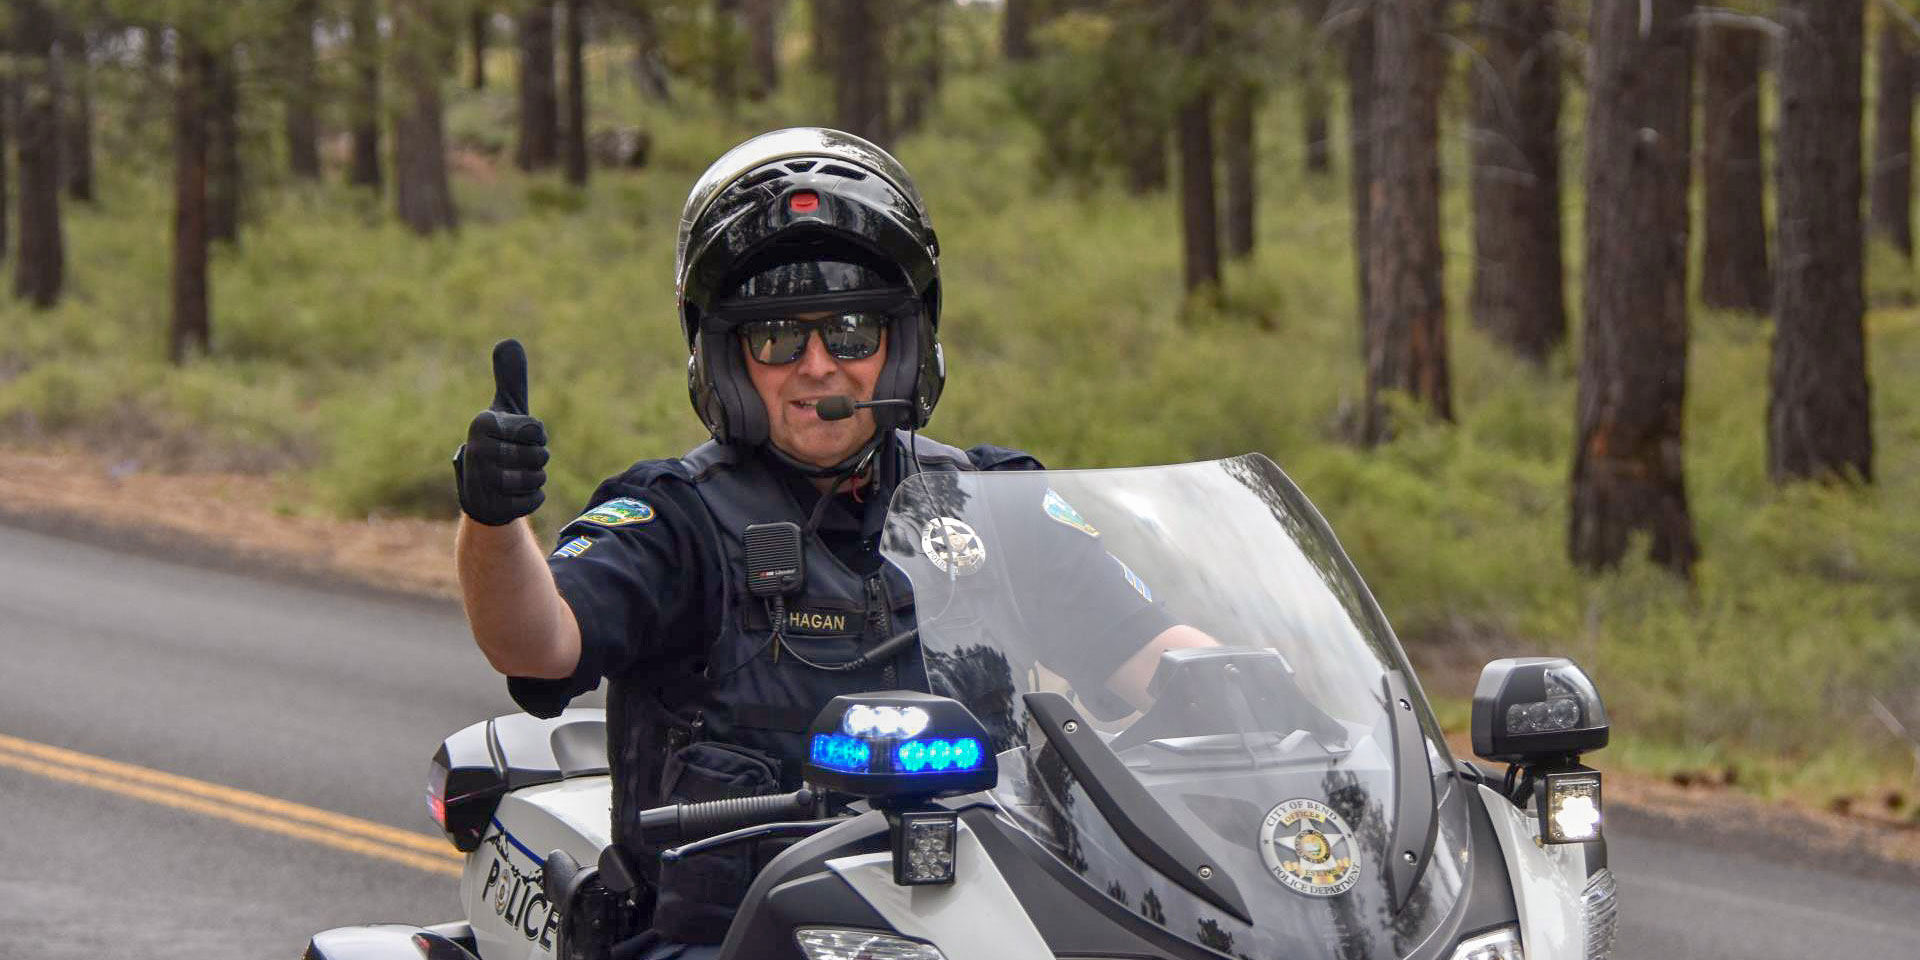 Bend Police Officer on a police motorcycle